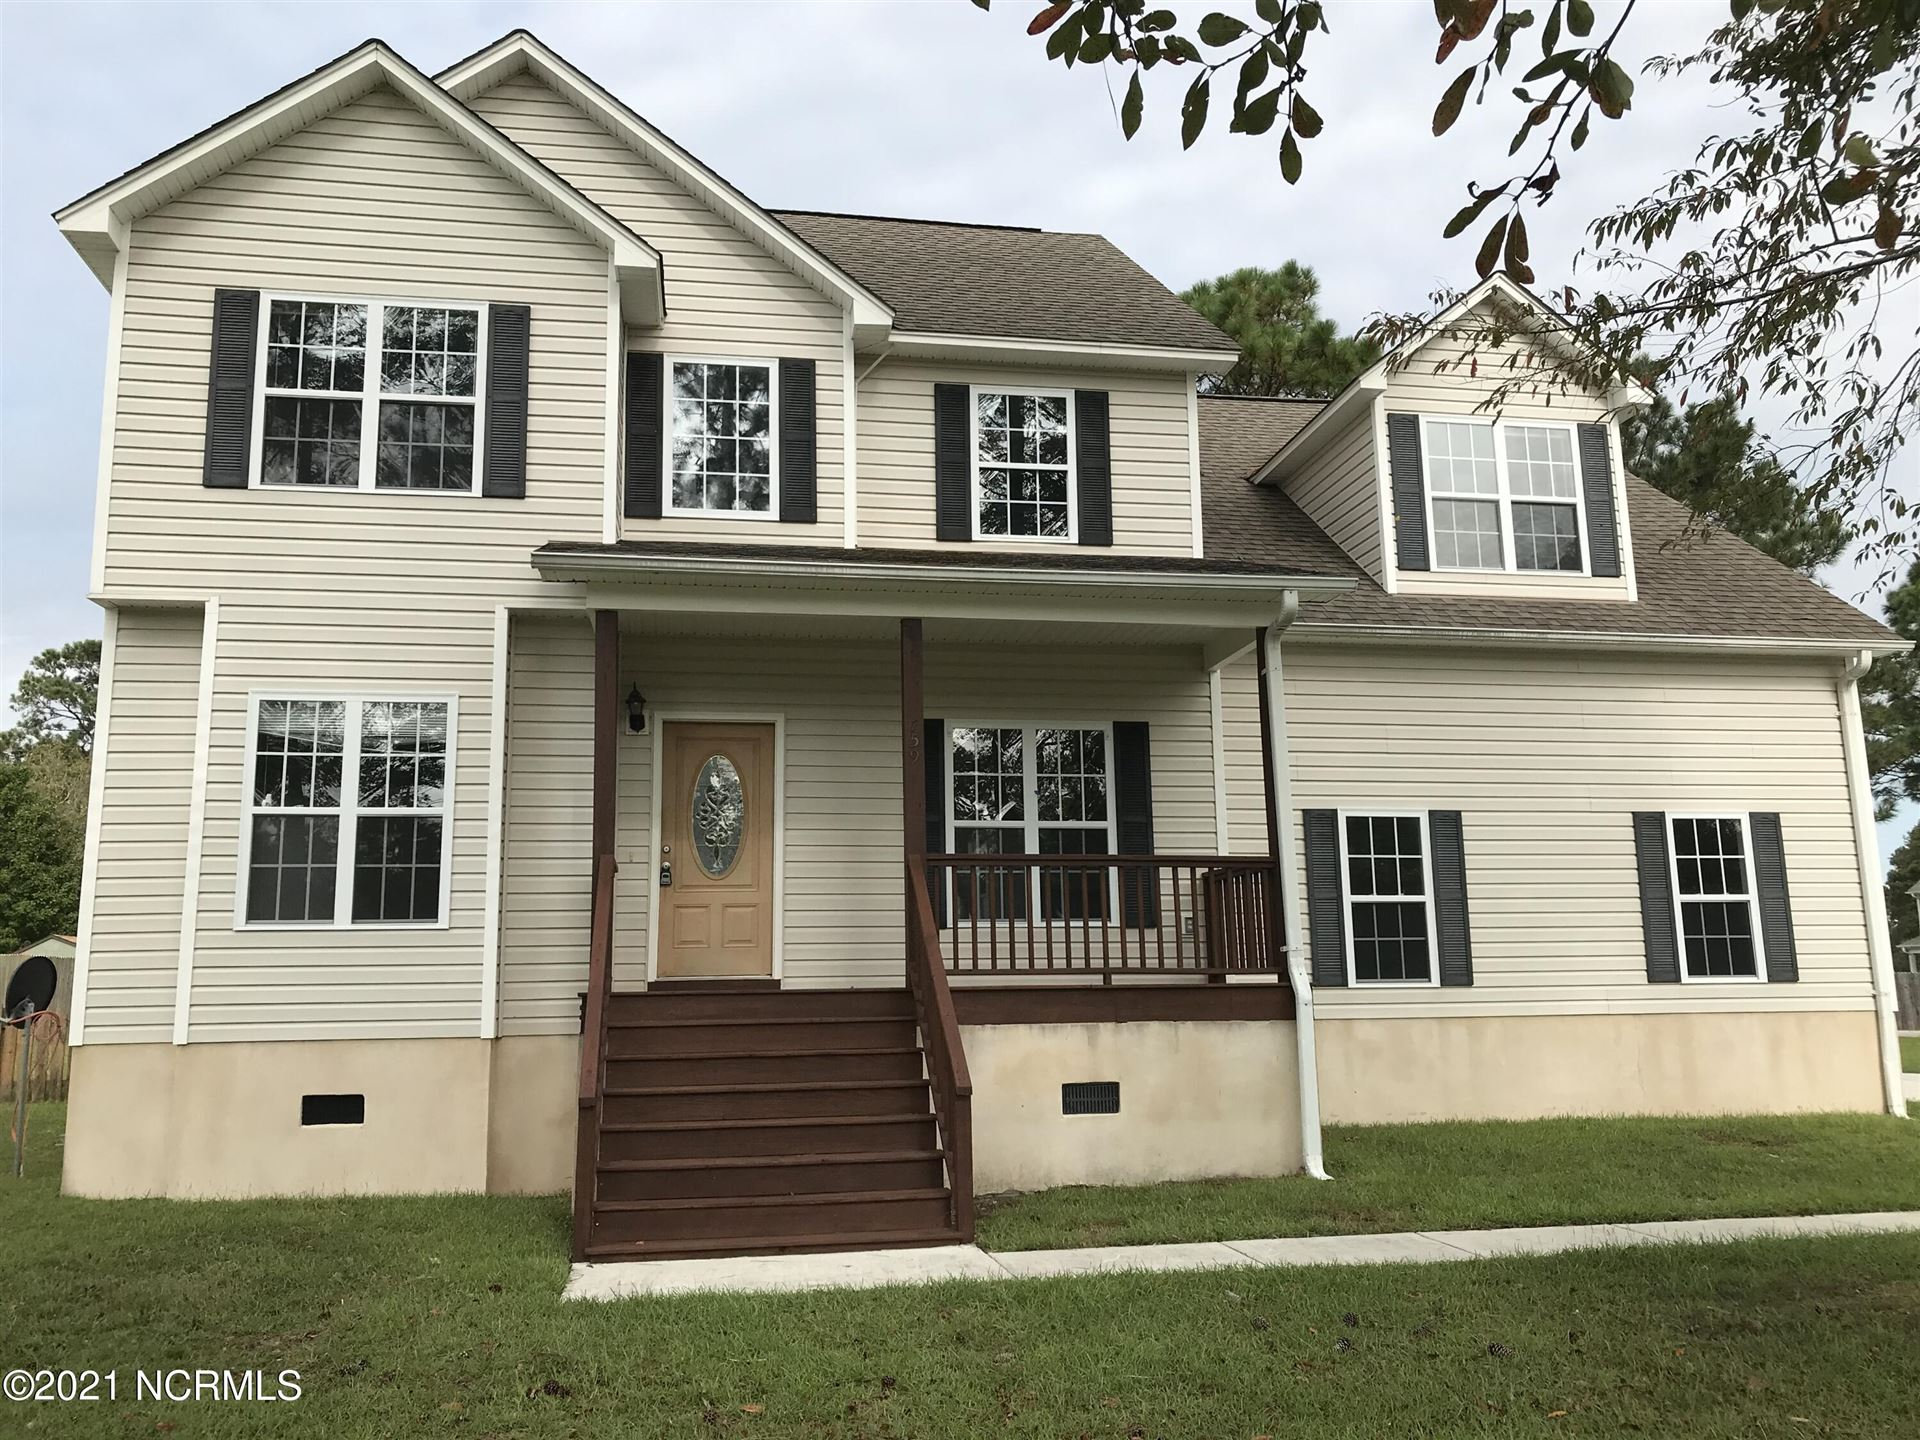 Photo for 759 Jim Grant Avenue, Sneads Ferry, NC 28460 (MLS # 100285691)